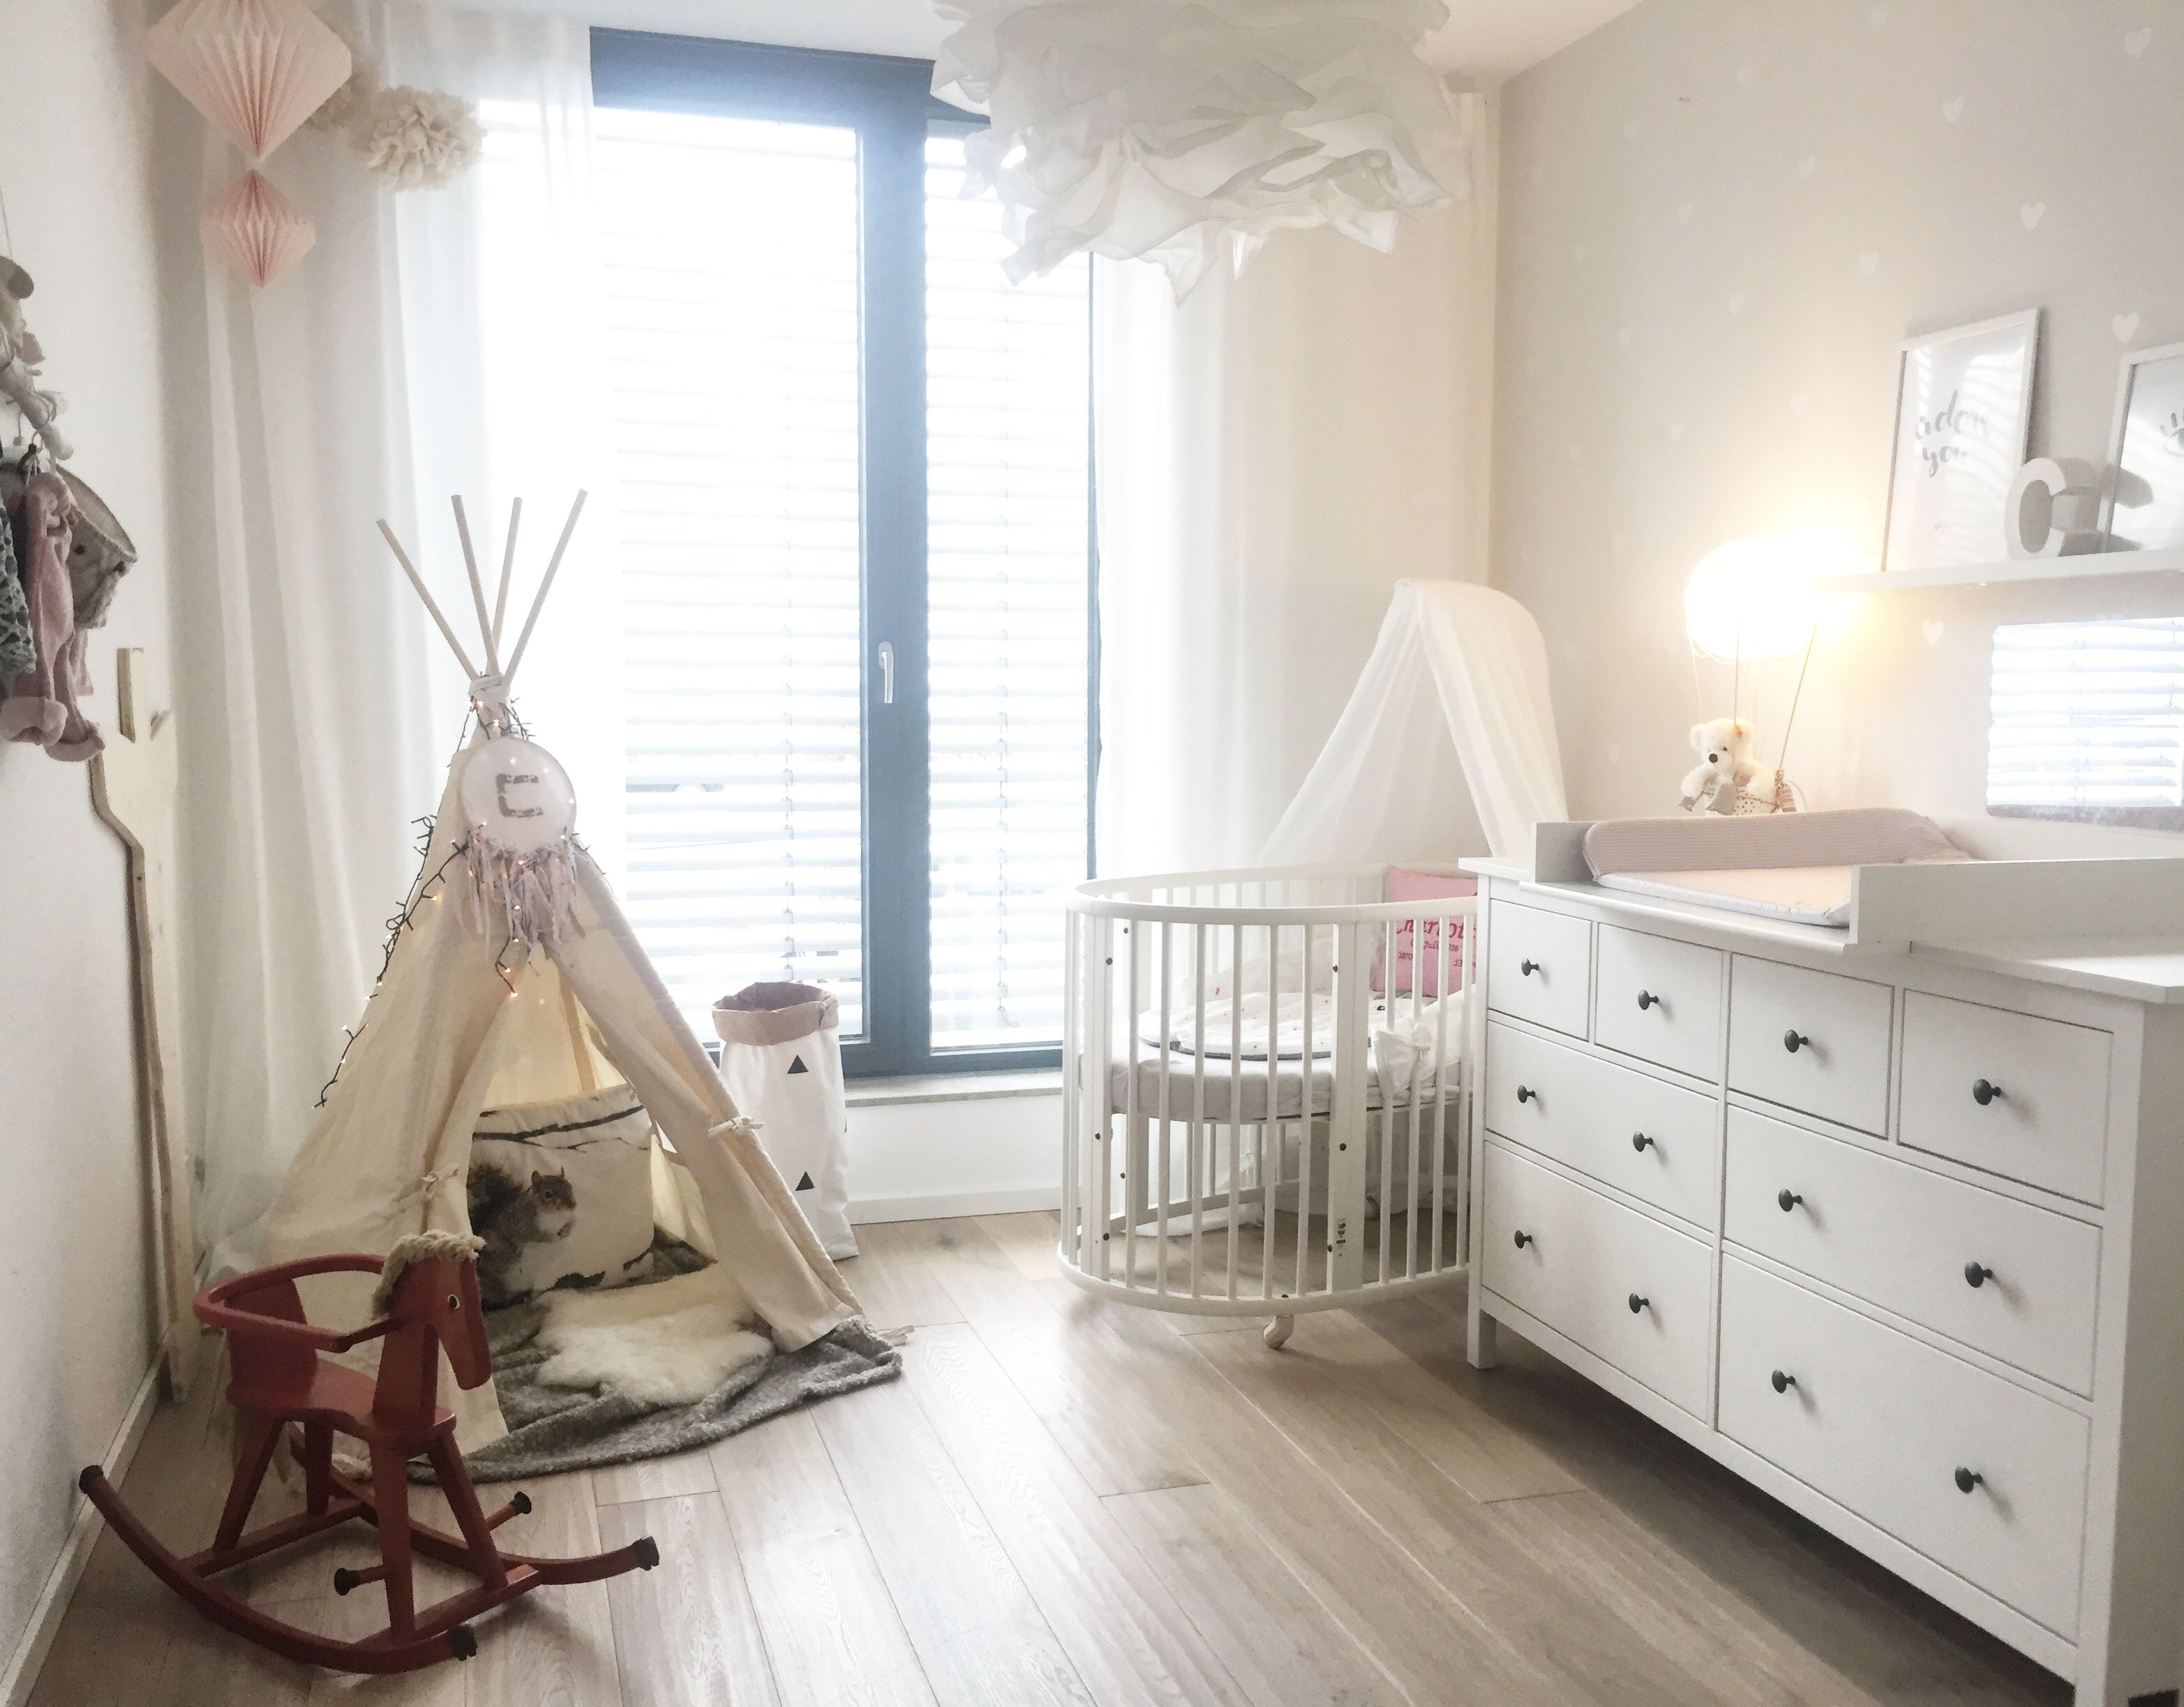 kinderzimmer babyzimmer tipi indianer ikea hemnes. Black Bedroom Furniture Sets. Home Design Ideas